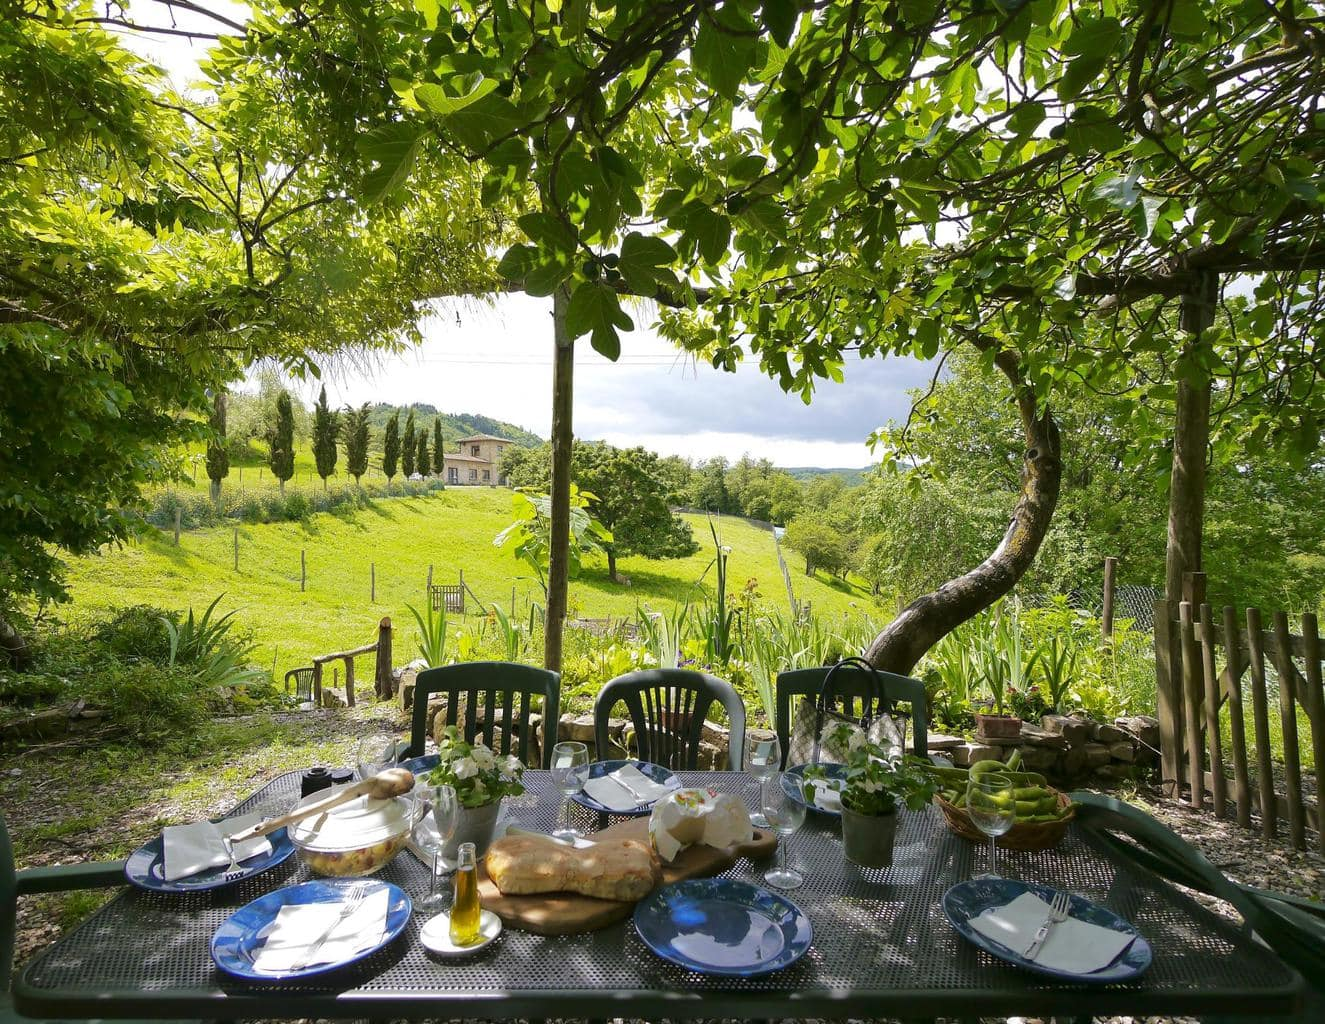 The perfect setting for an Italian lunch and Lambrusco aperitif